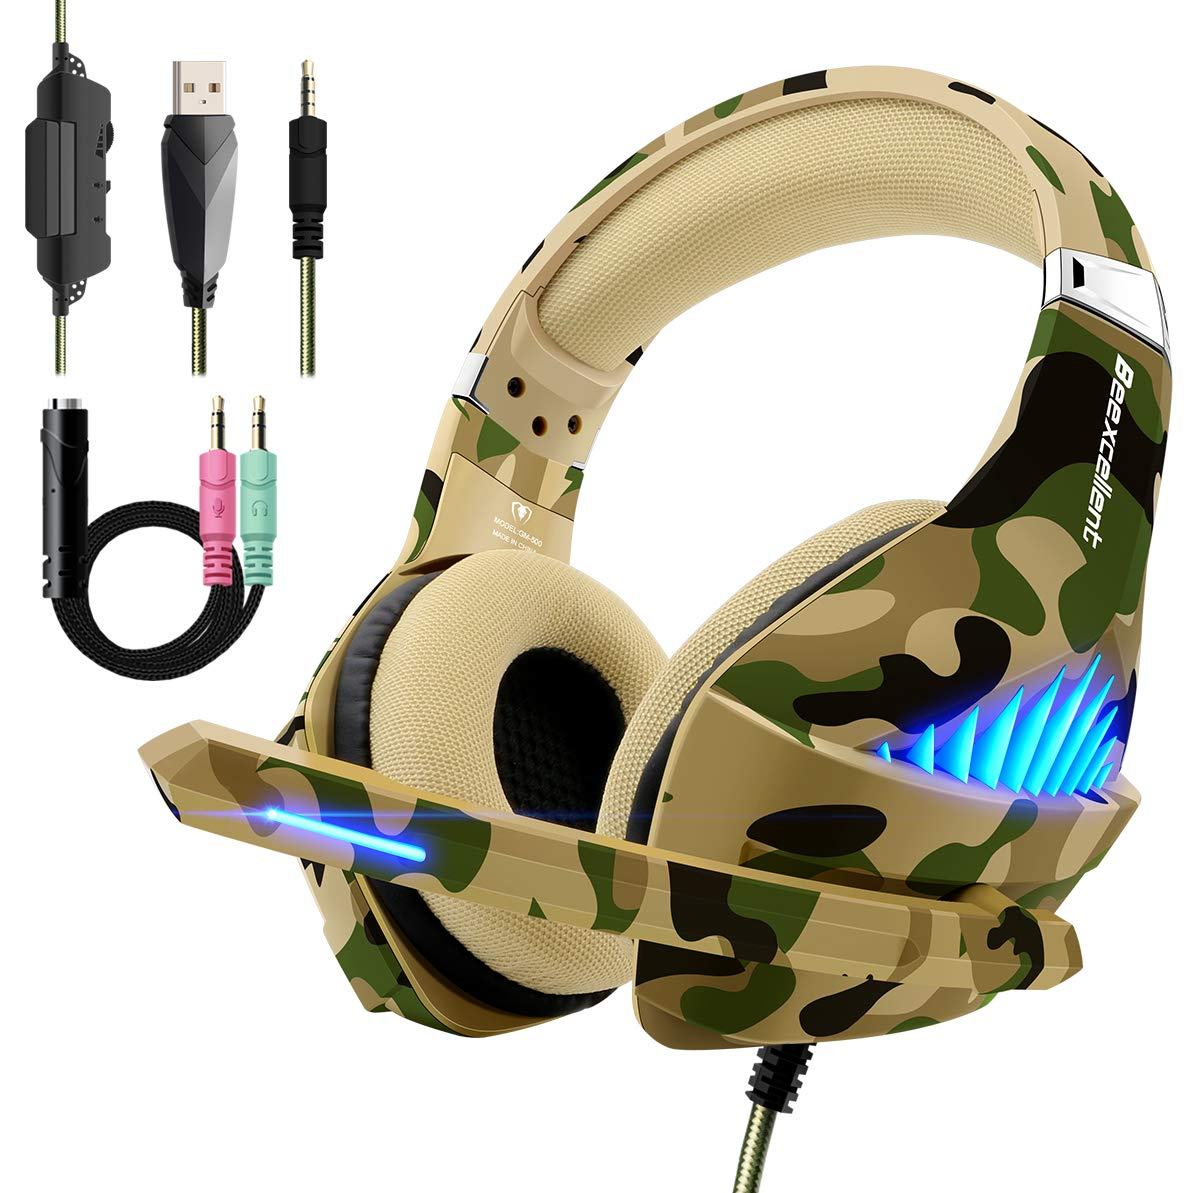 Beexcellent PS4 Xbox One Cuffie Gaming Stereo Deep Bass Noise Cancelling  Headset Auricolare Gioco con Microfono 3f87c1c346a5